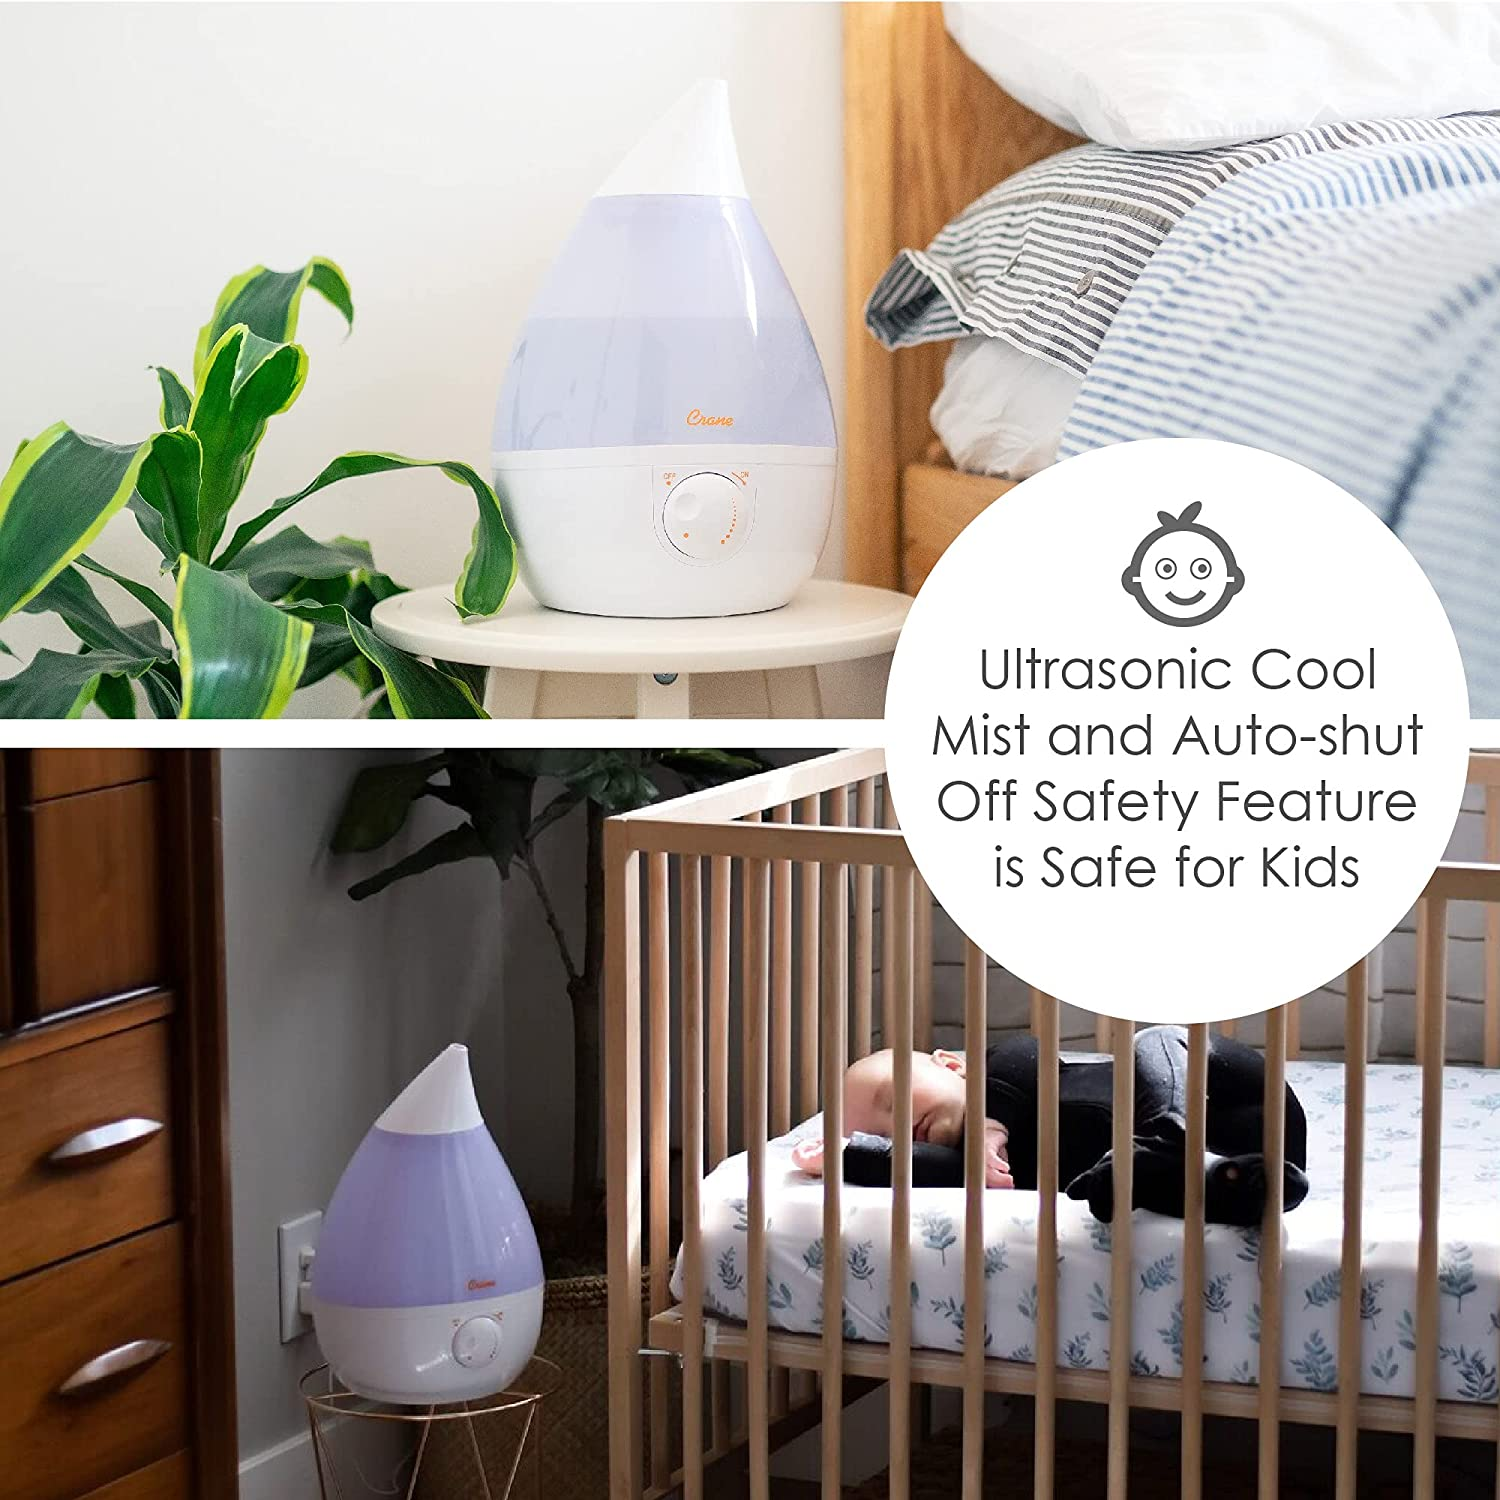 Do humidifiers help with stuffy nose? 14